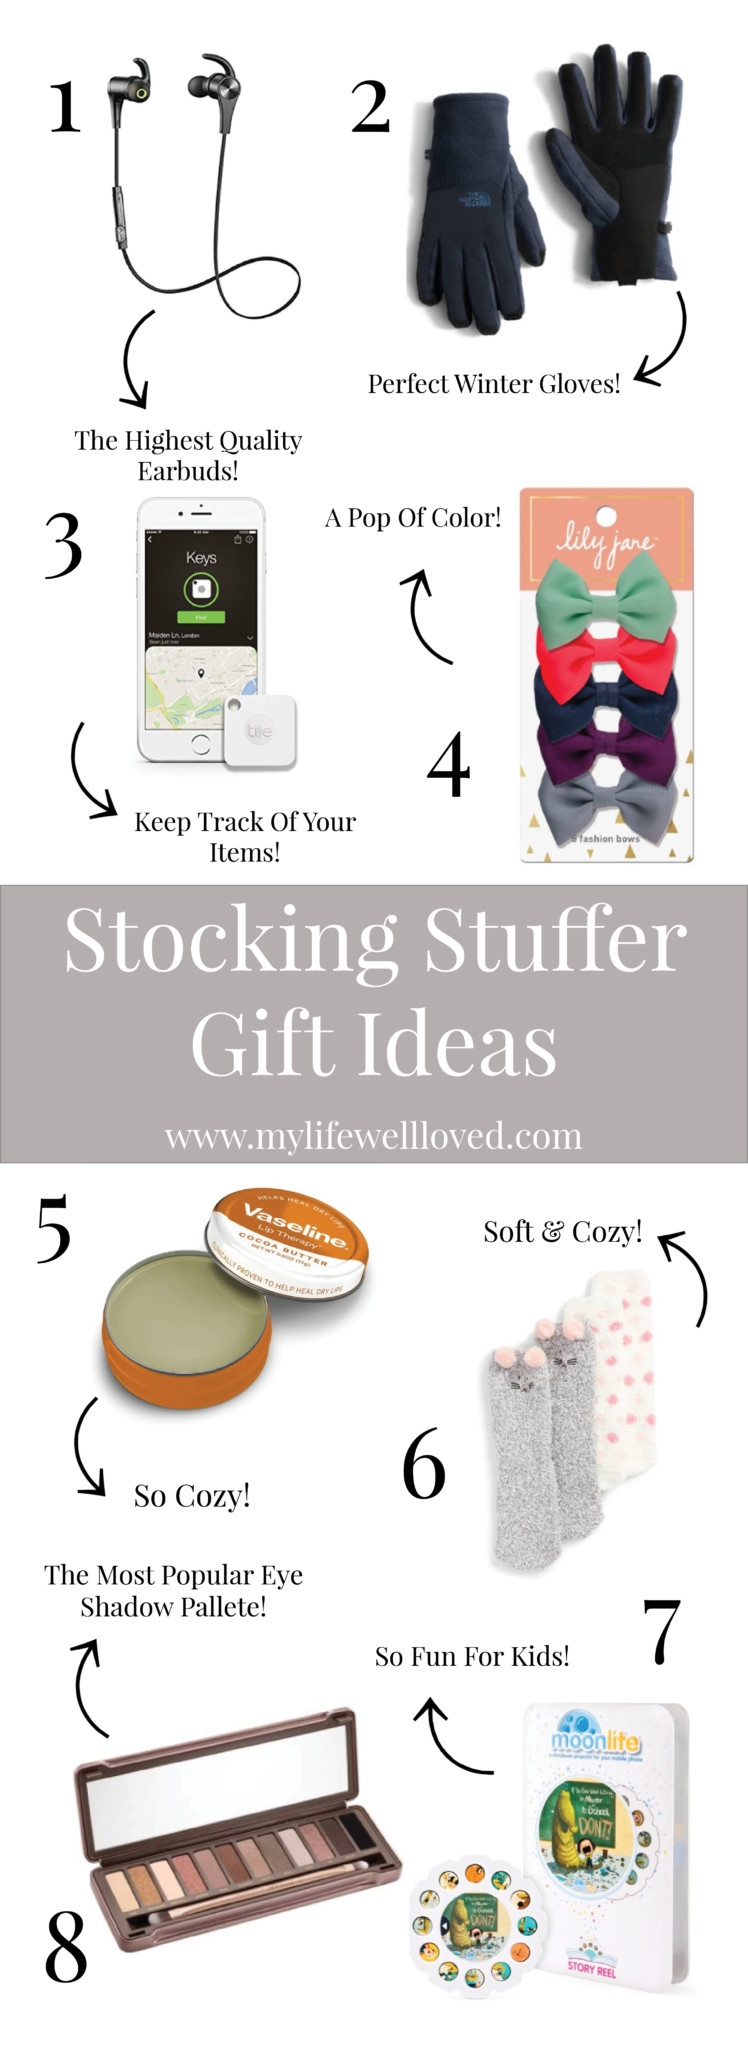 Stocking stuffer gift guide from alabama blogger Heather of MyLifeWellLoved.com